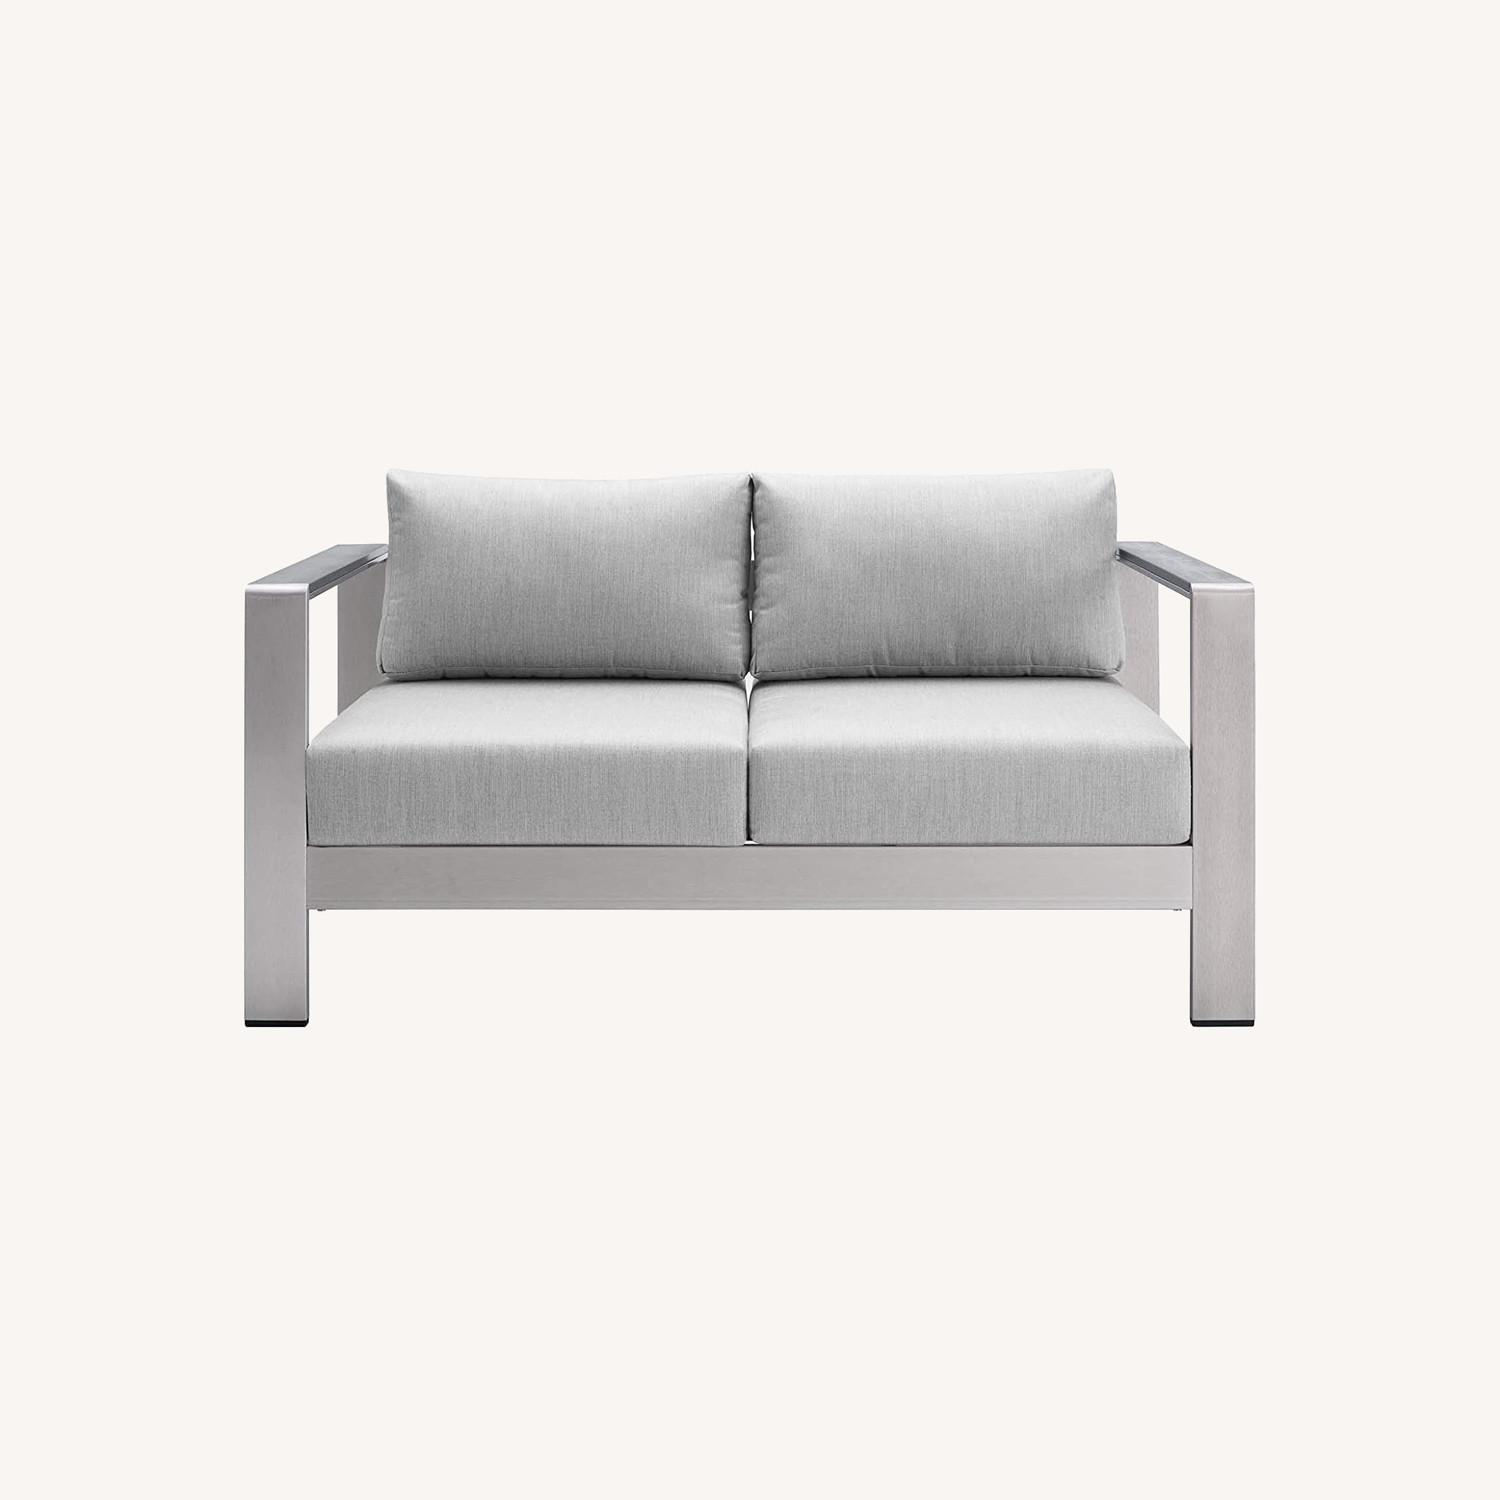 Outdoor Loveseat In Silver Aluminum Frame Finish - image-8